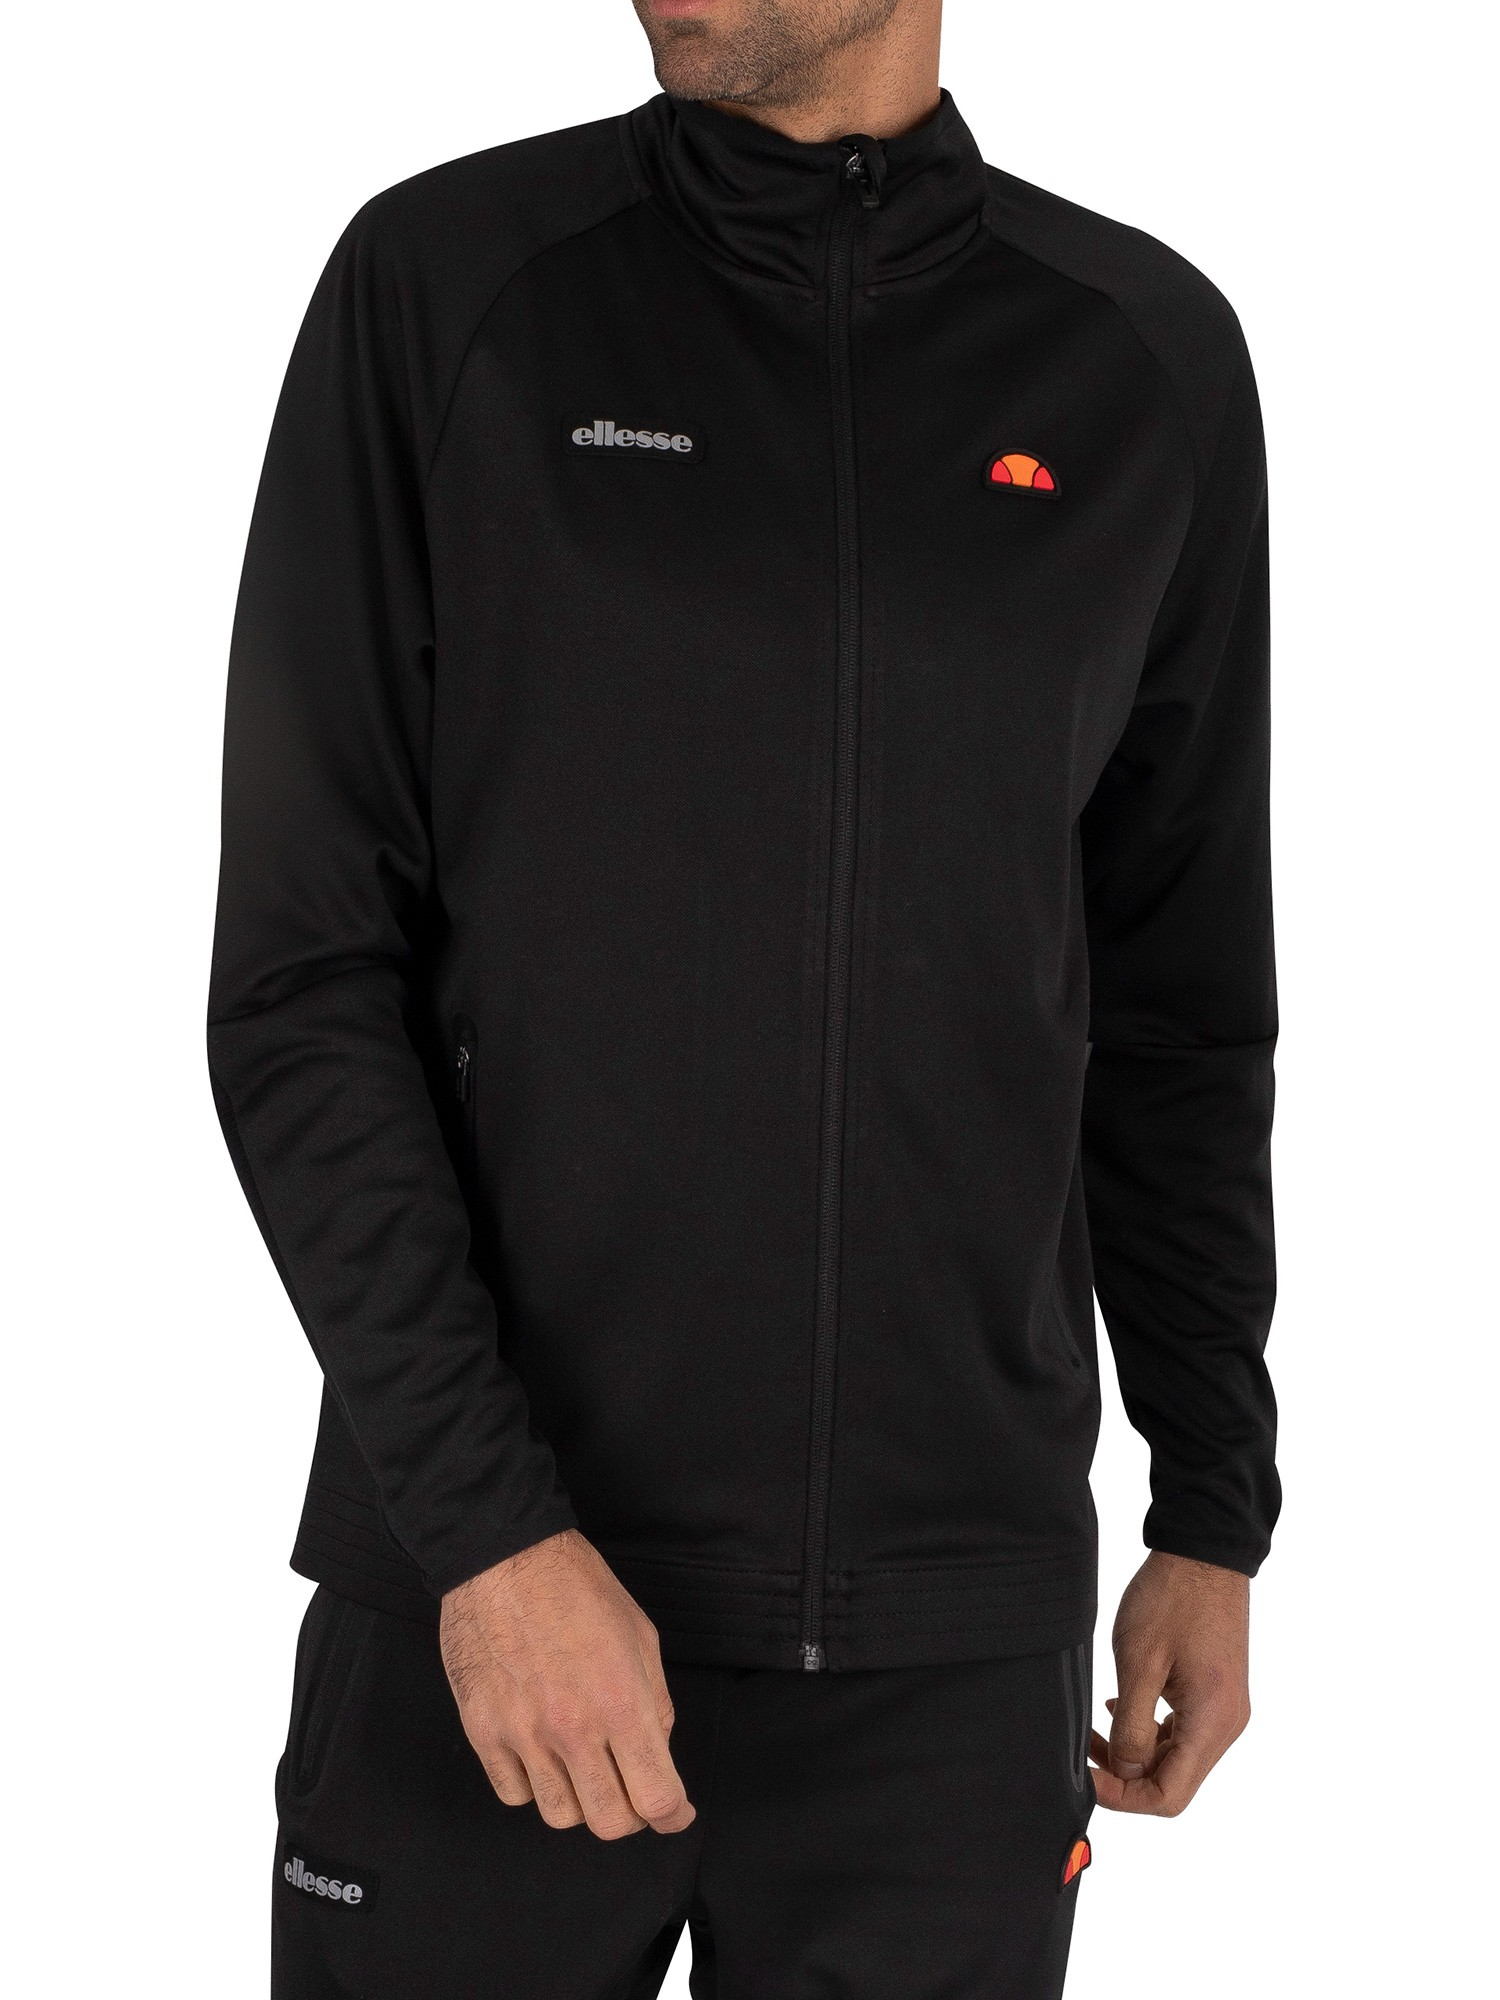 Ellesse Caldwelo Track  Top Jacket - Black